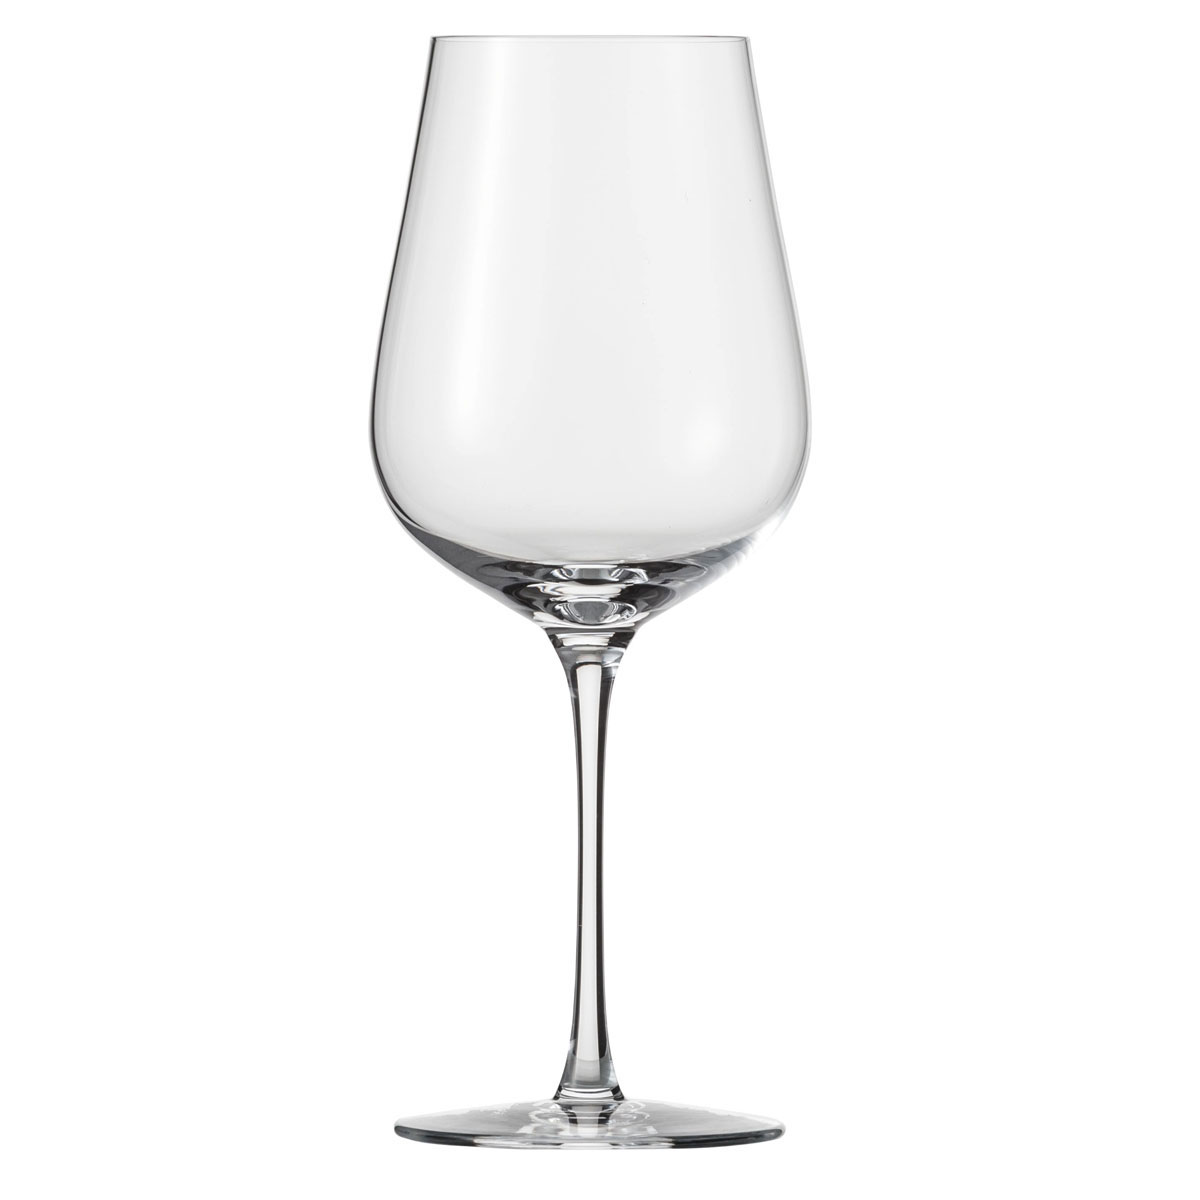 Schott Zwiesel Tritan Crystal, Air Riesling Glass, Single